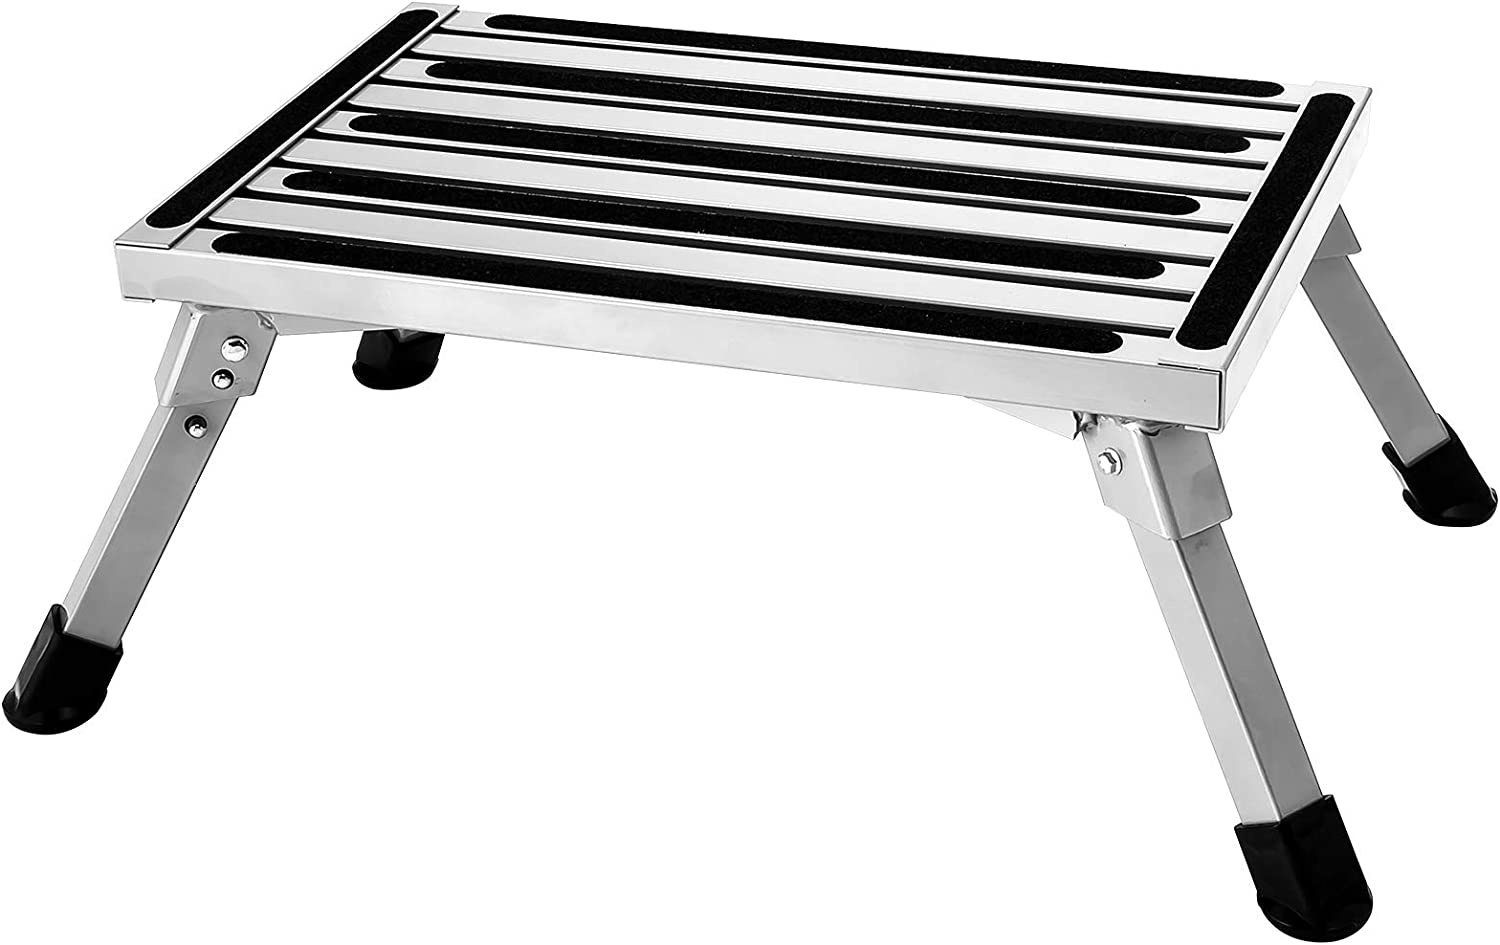 Aluminum Folding Platform Steps RV Step Stool with Anti-Slip Surface & Rubber Feet for Motorhome,Traile, SUV, 440LBS Capacity